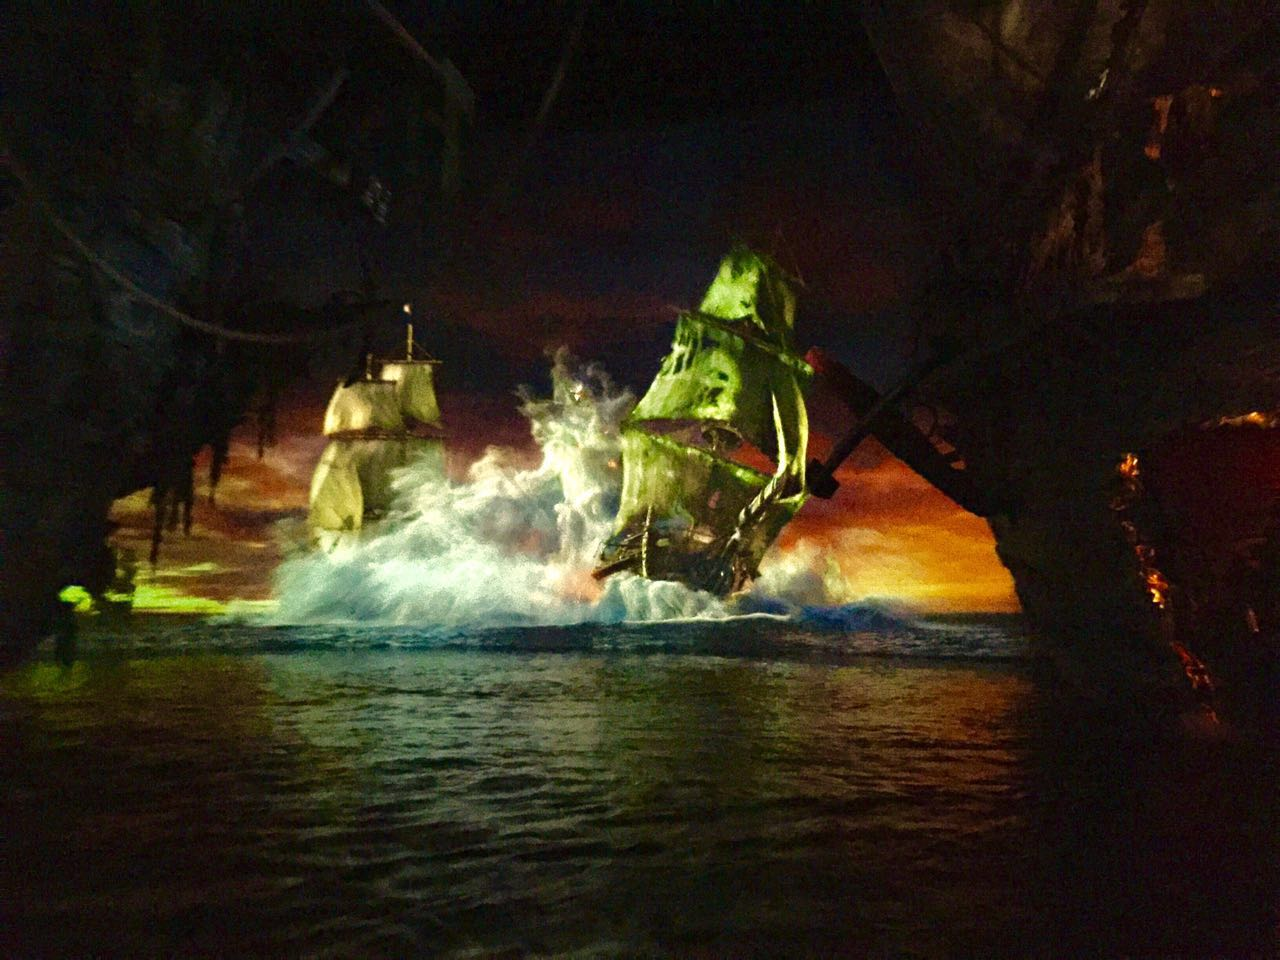 Shanghai Disneyland Pirates of the Caribbean